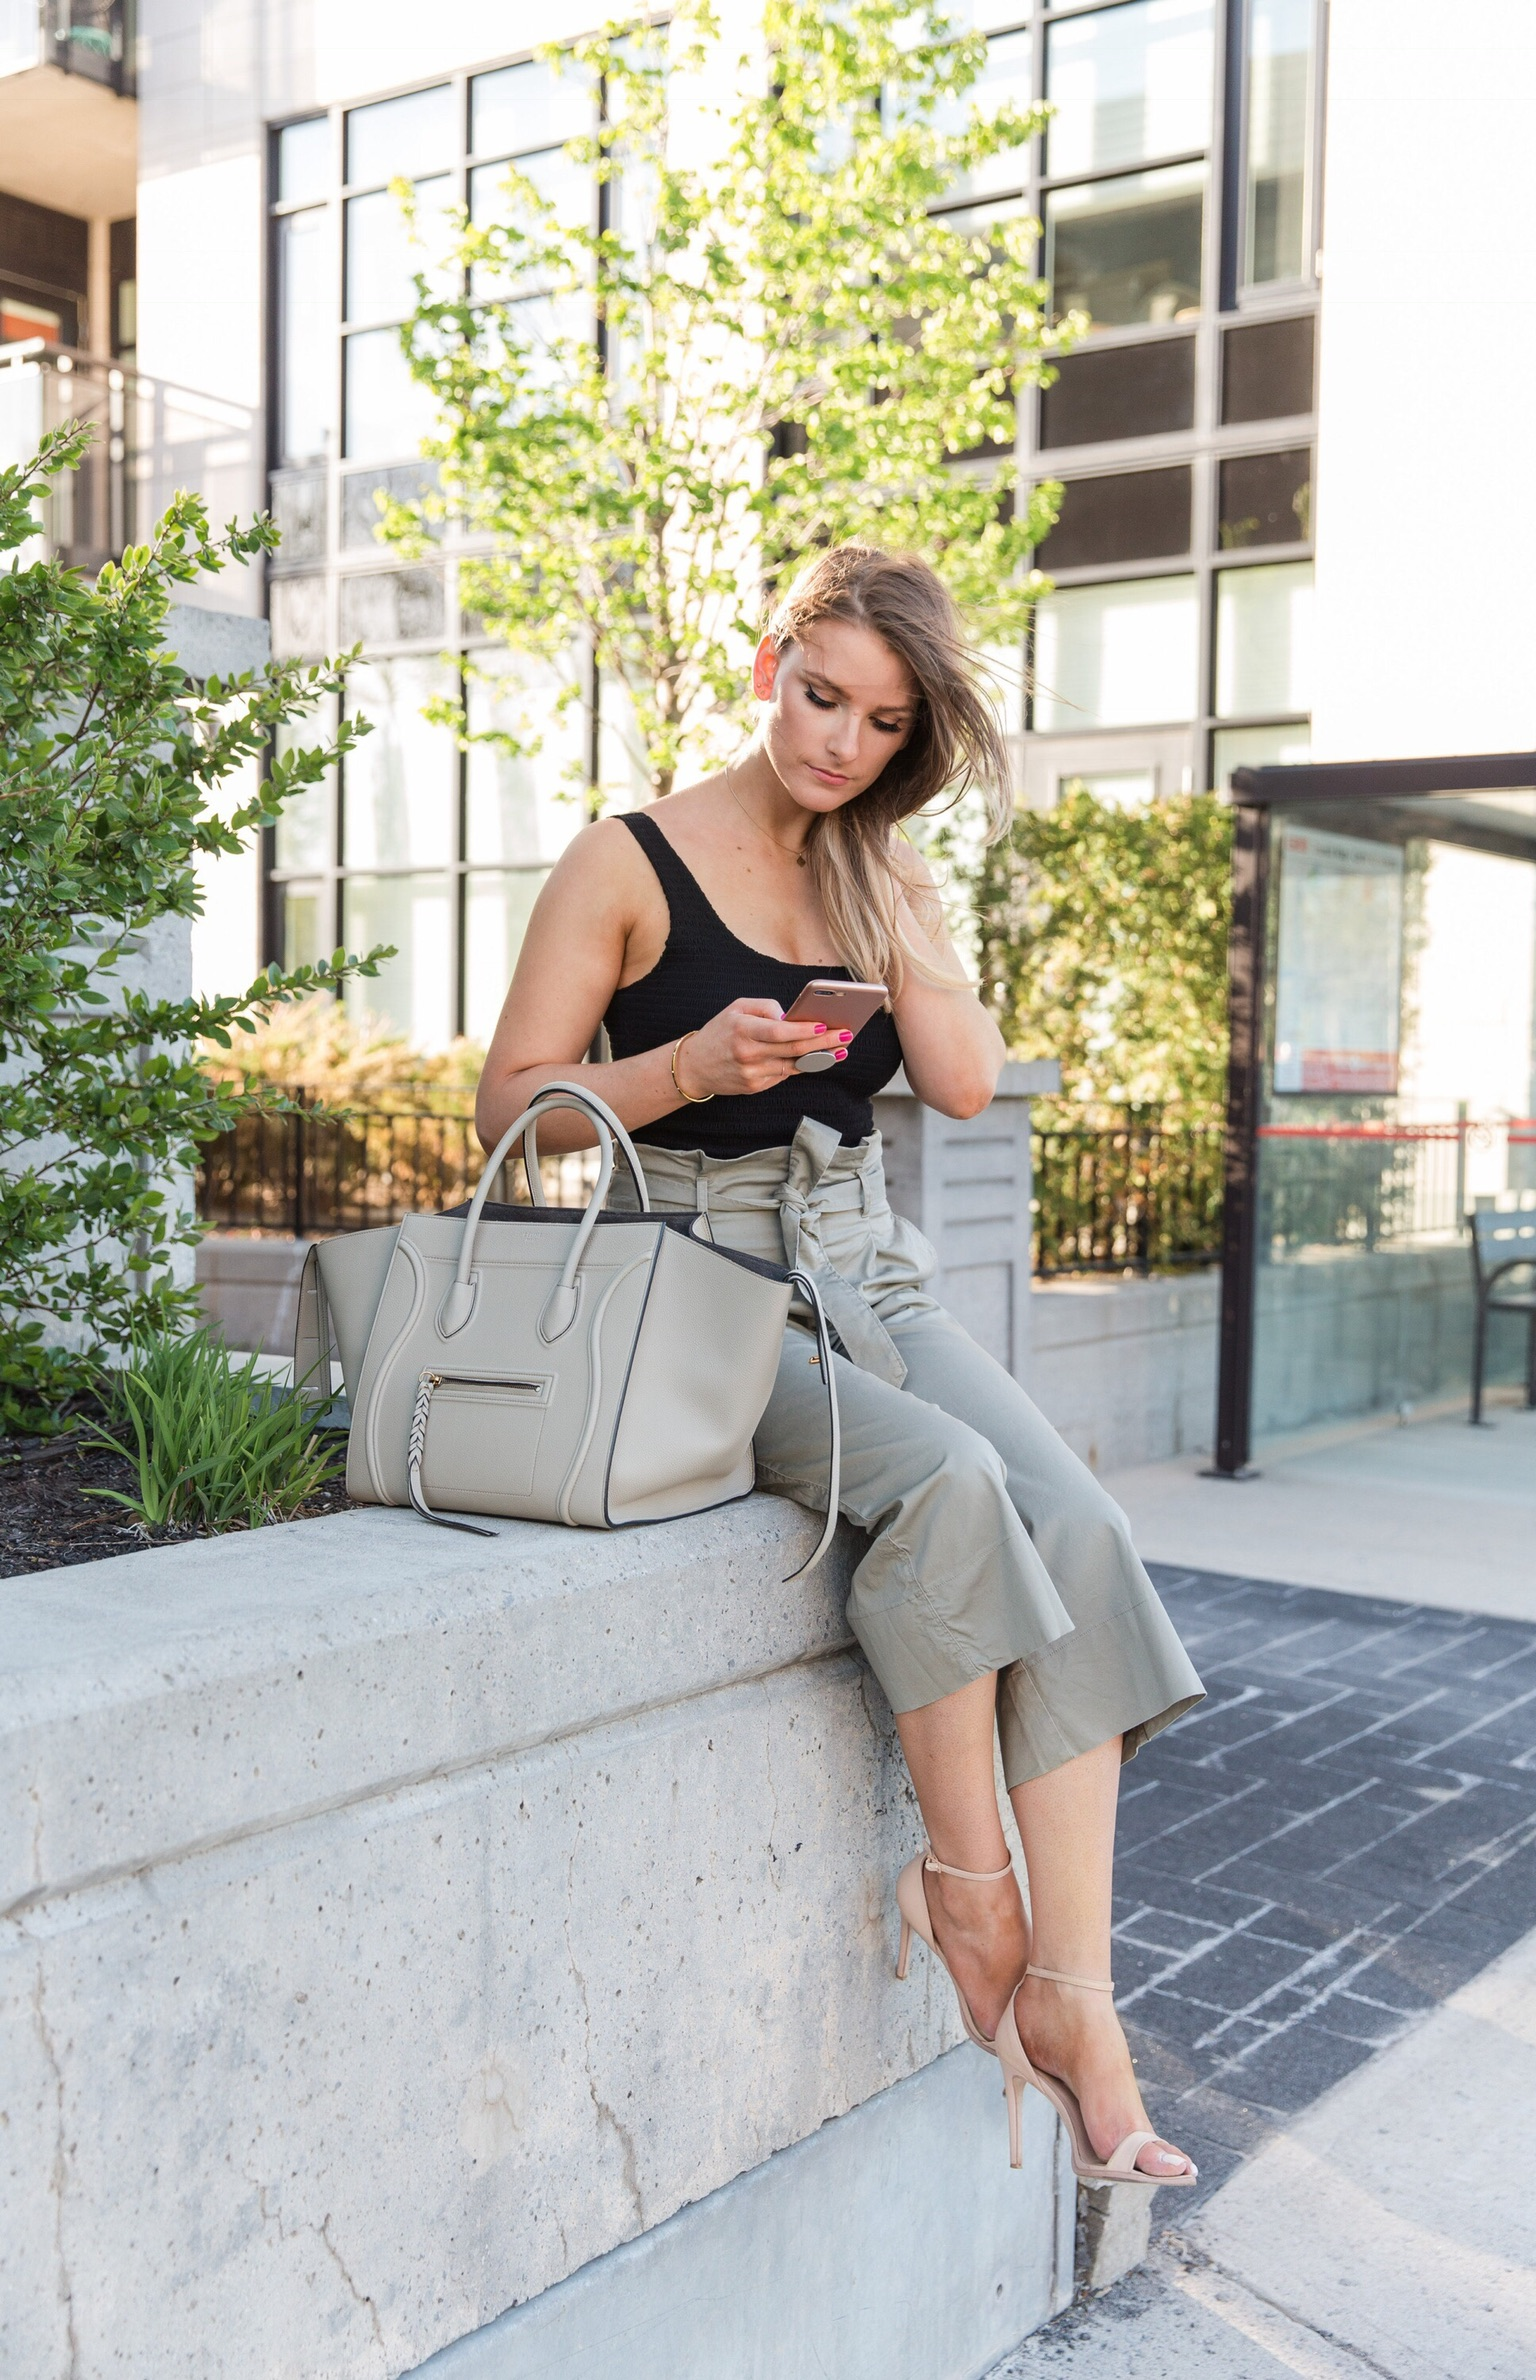 1 person, fashion blogger on phone